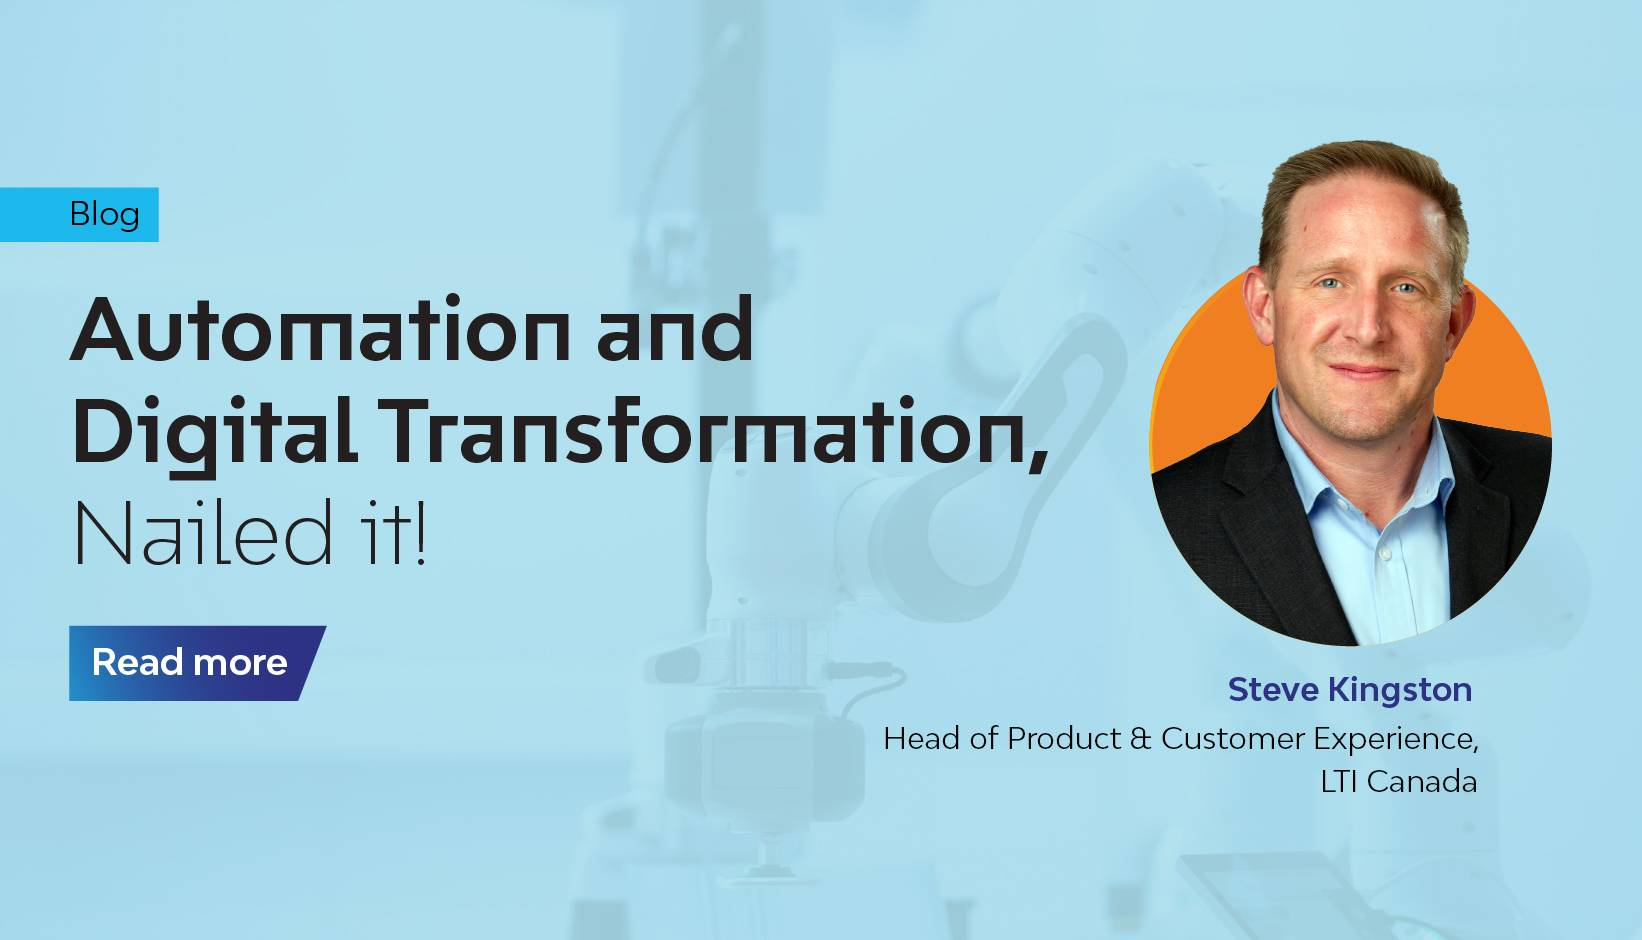 Automation and Digital Transformation, Nailed it!